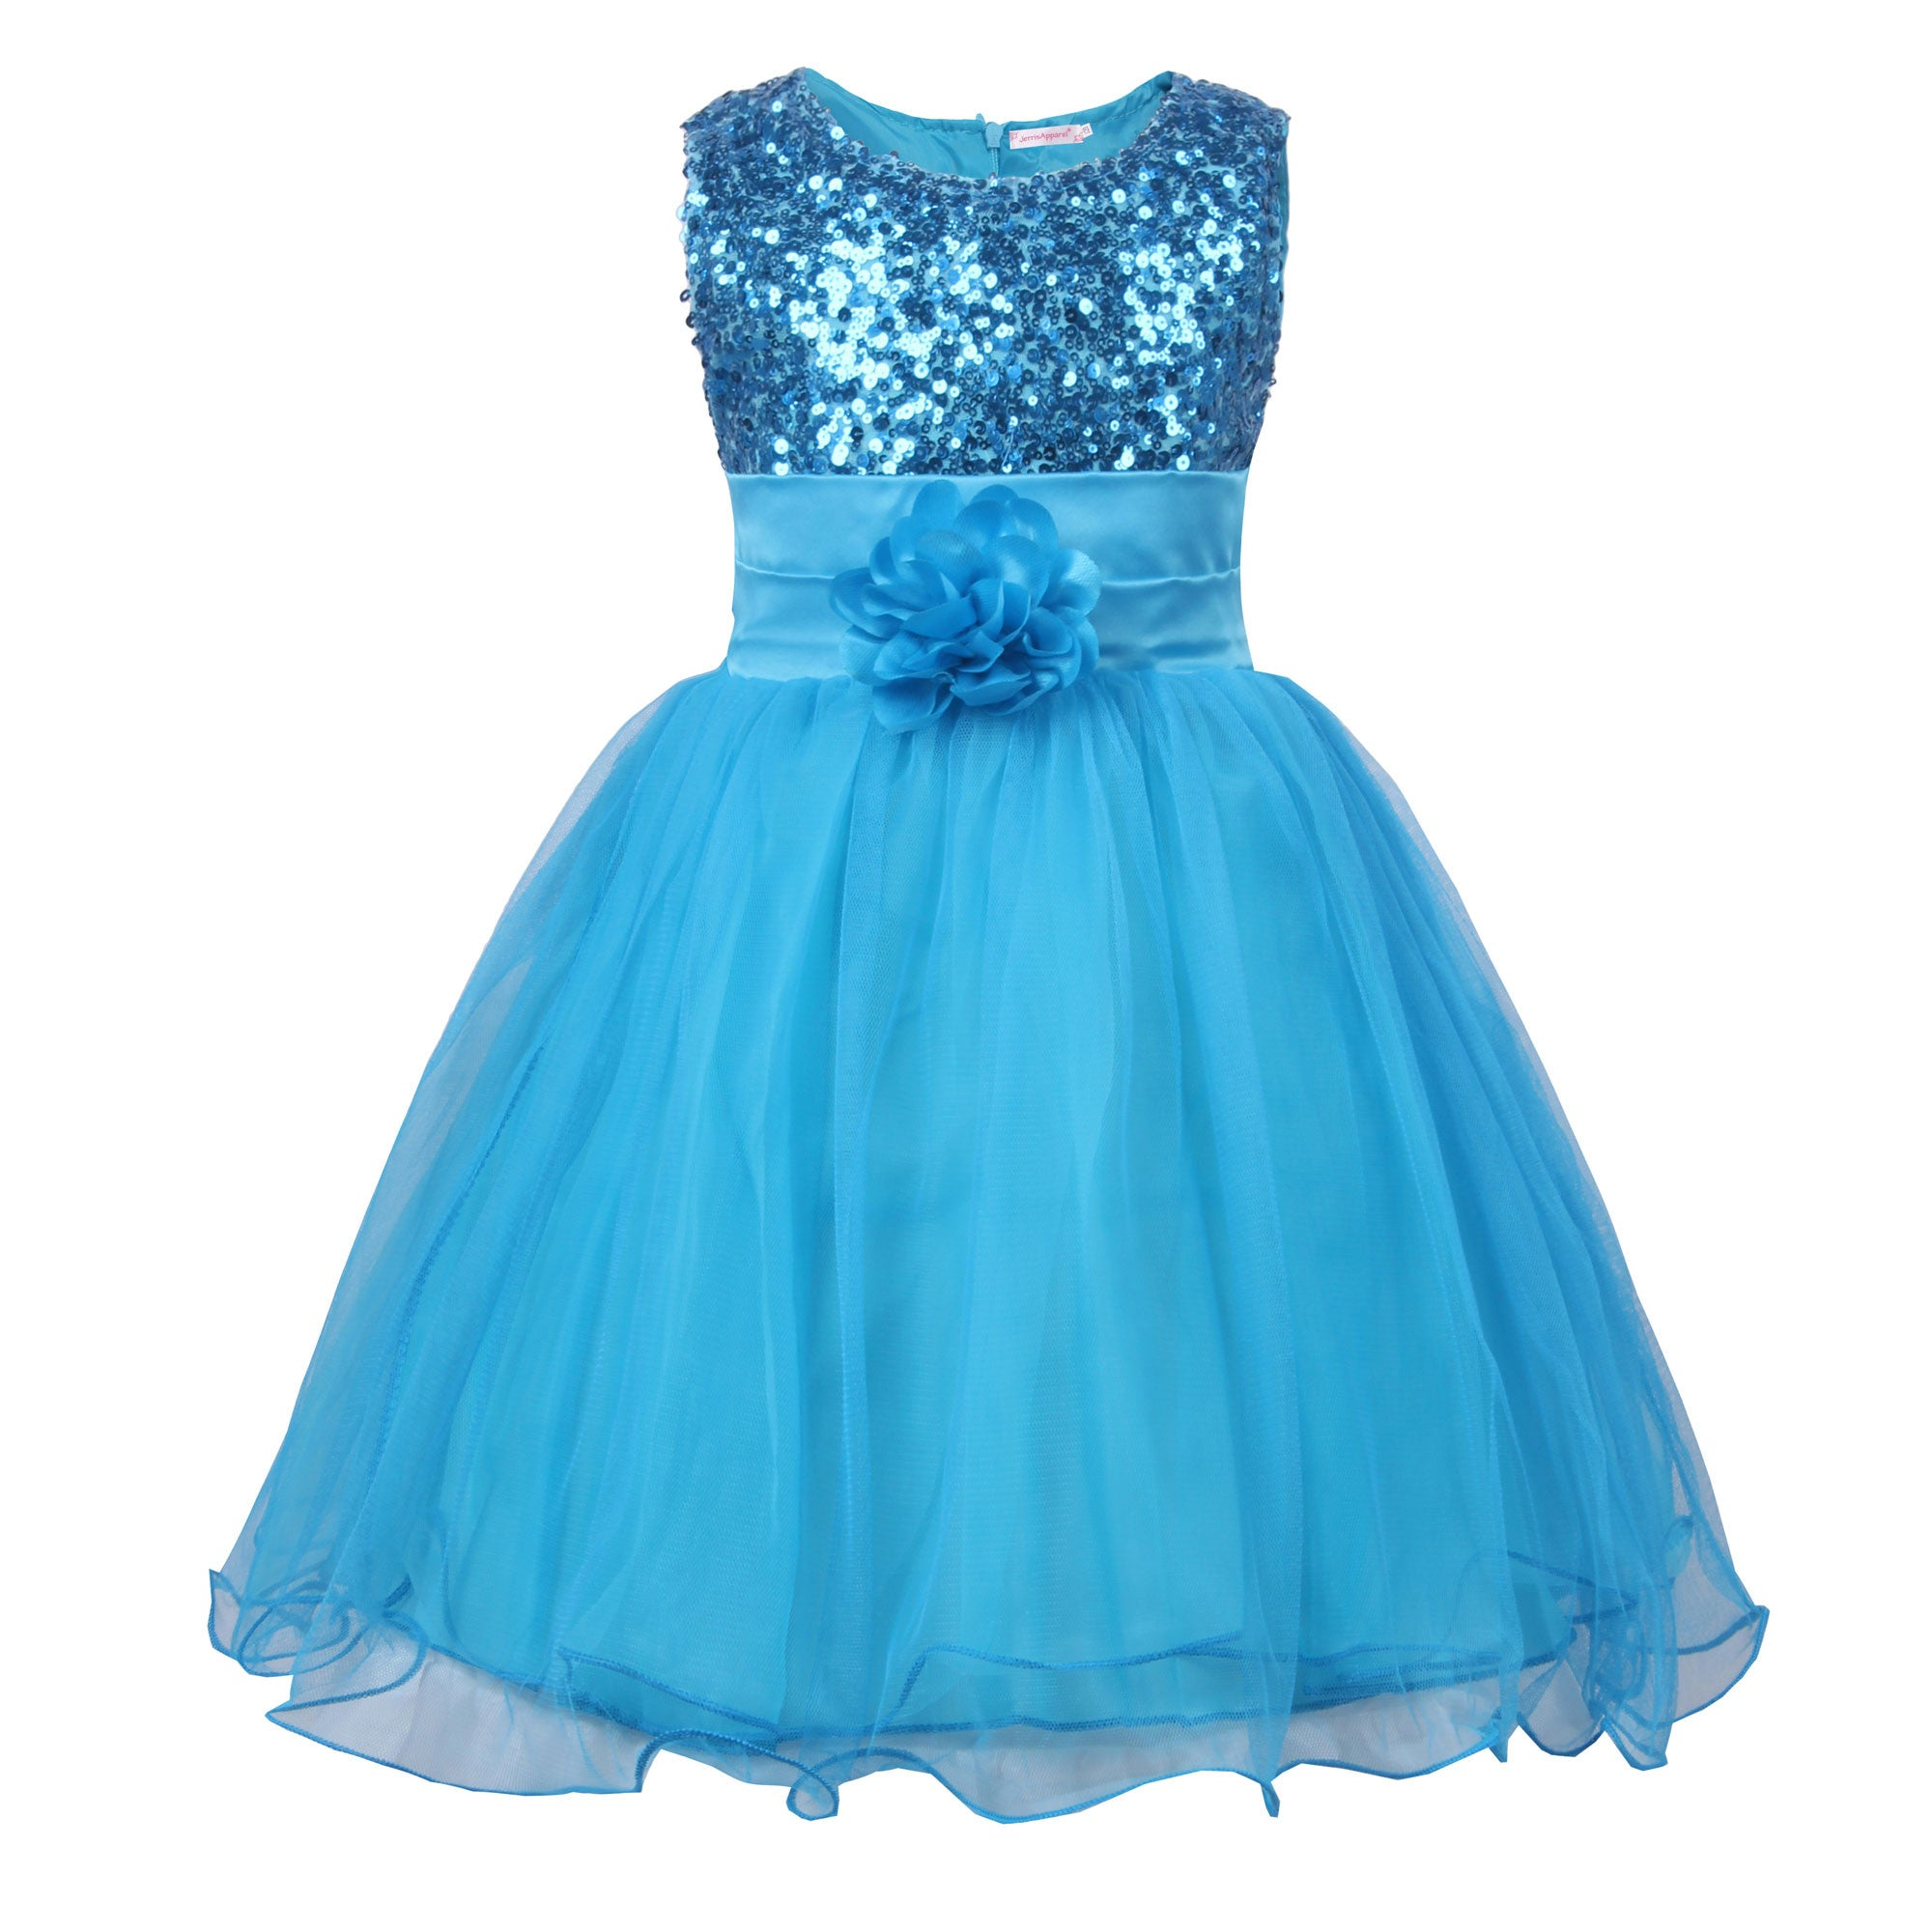 Little Girls\' Sequin Mesh Flower Ball Gown Party Dress Tulle Prom ...